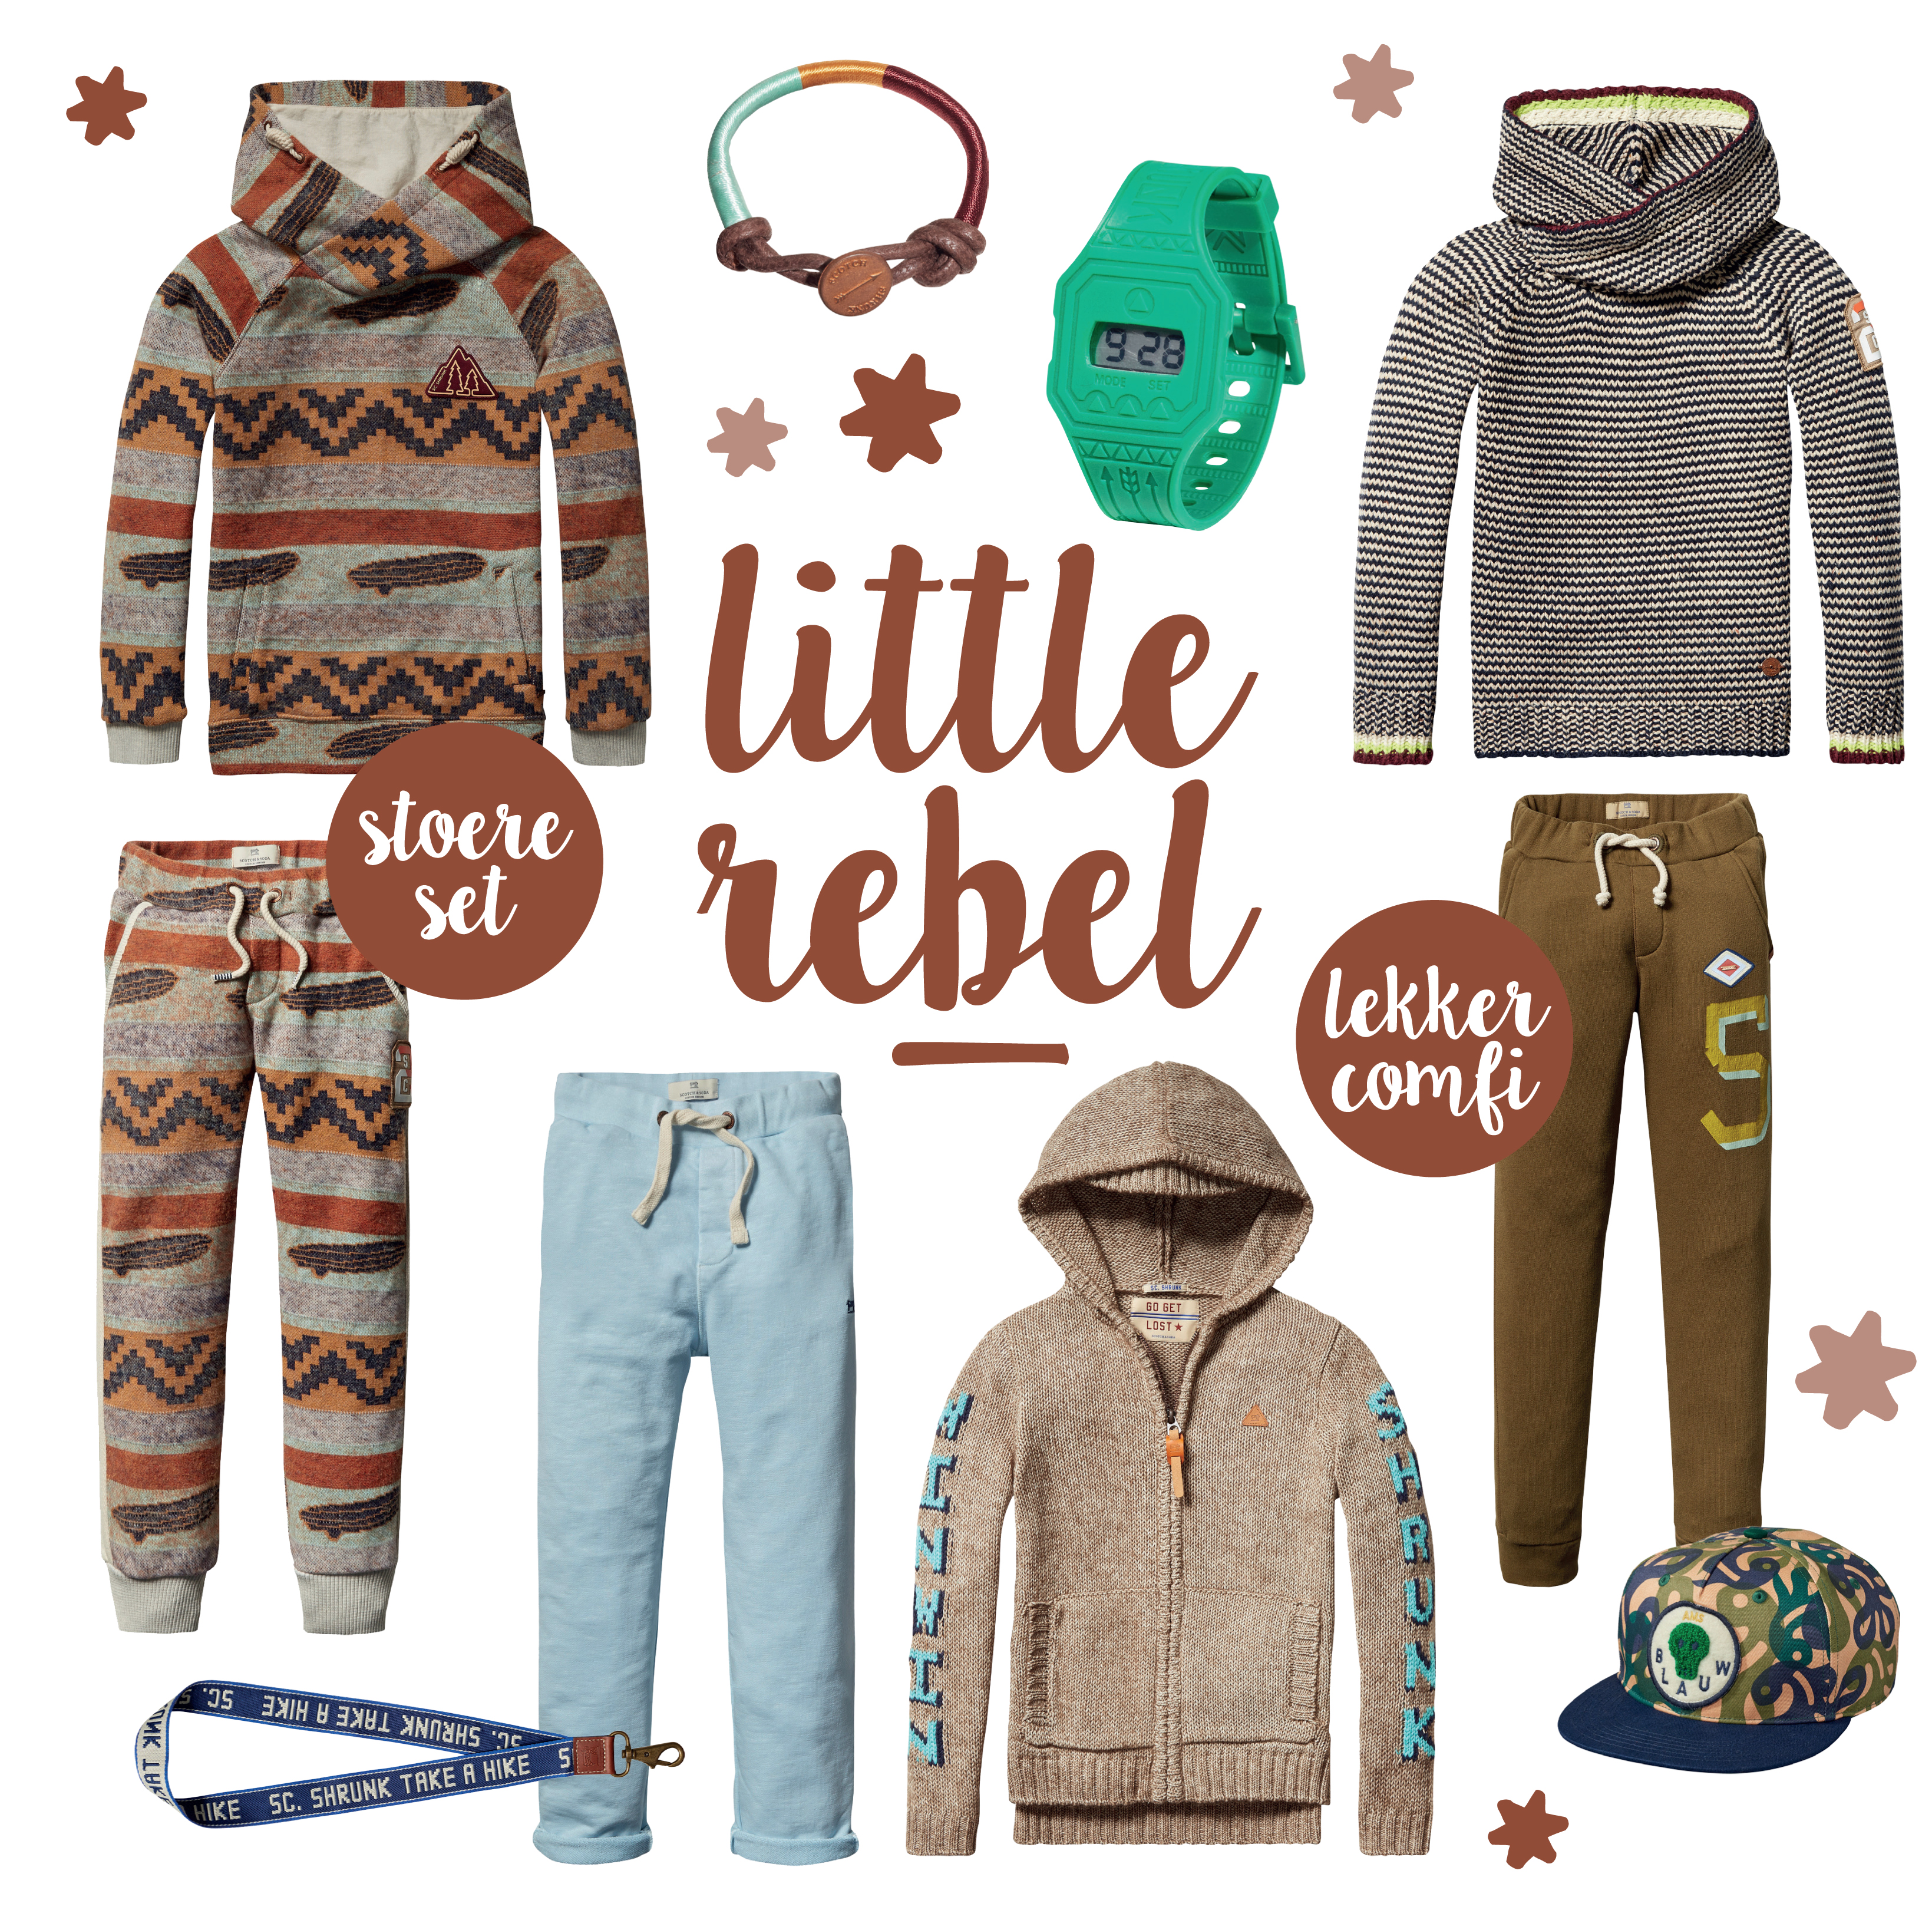 urban-kinderkleding-jongenskleding-scotch-shrunk